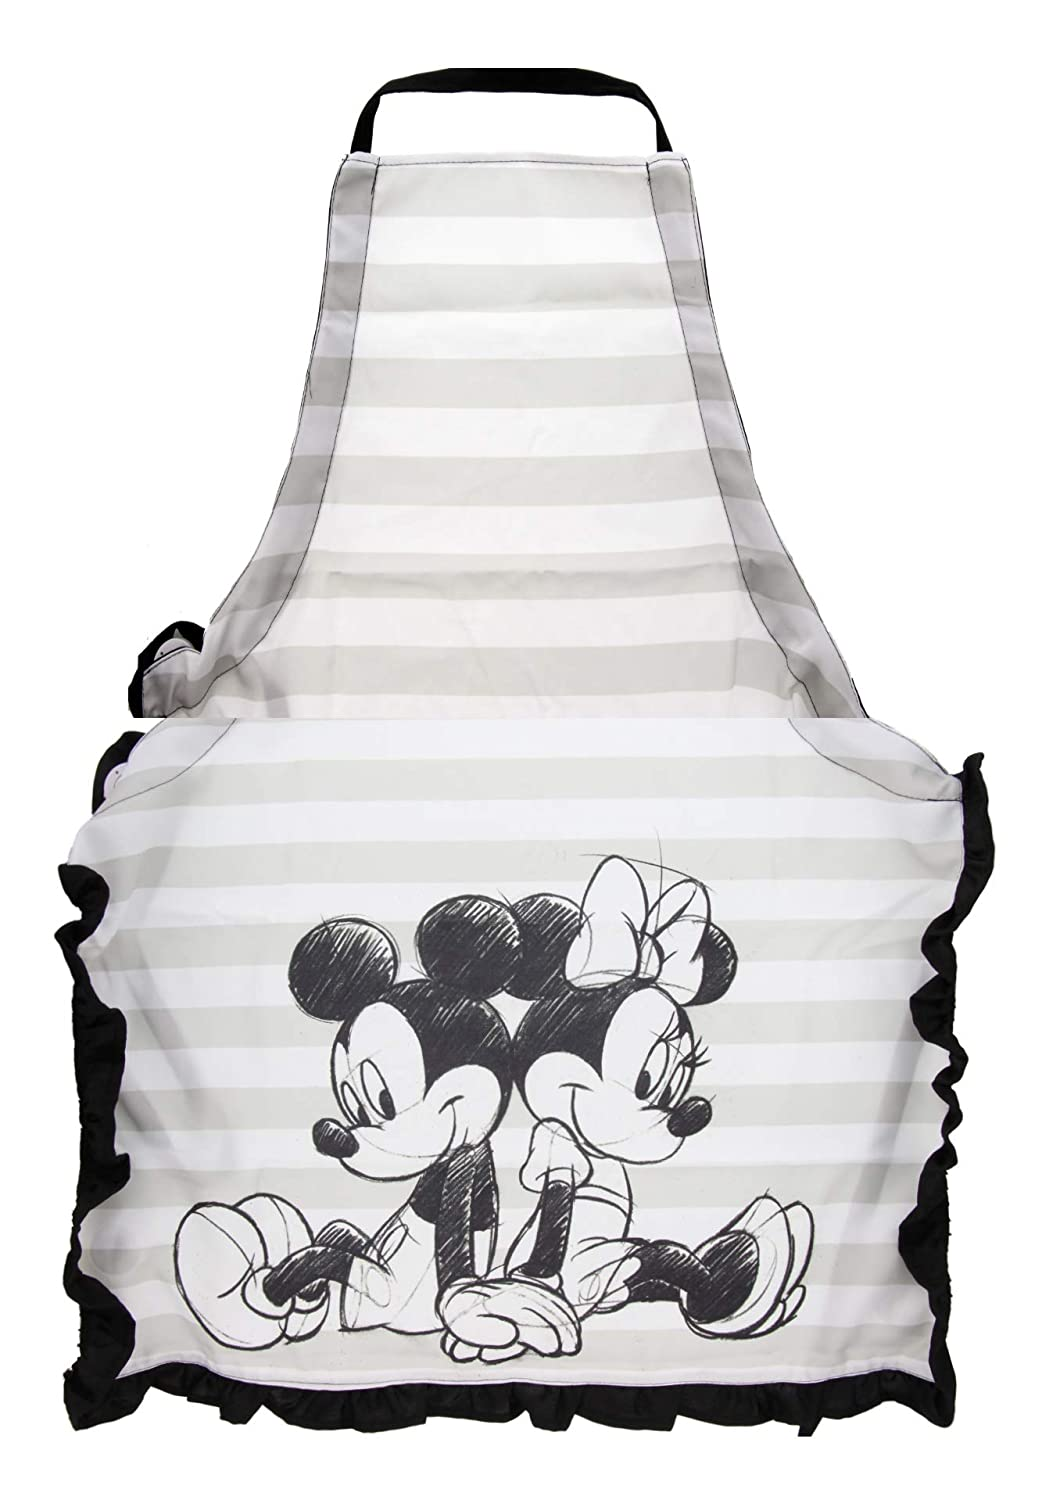 Disney Mickey & Minnie Mouse Apron - Stylish Design in White, Grey & Black With Mickey & Minnie Icon – Protect Your Clothes, Durable, Lightweight, Easy-Care - A Perfect Addition to Any Kitchen